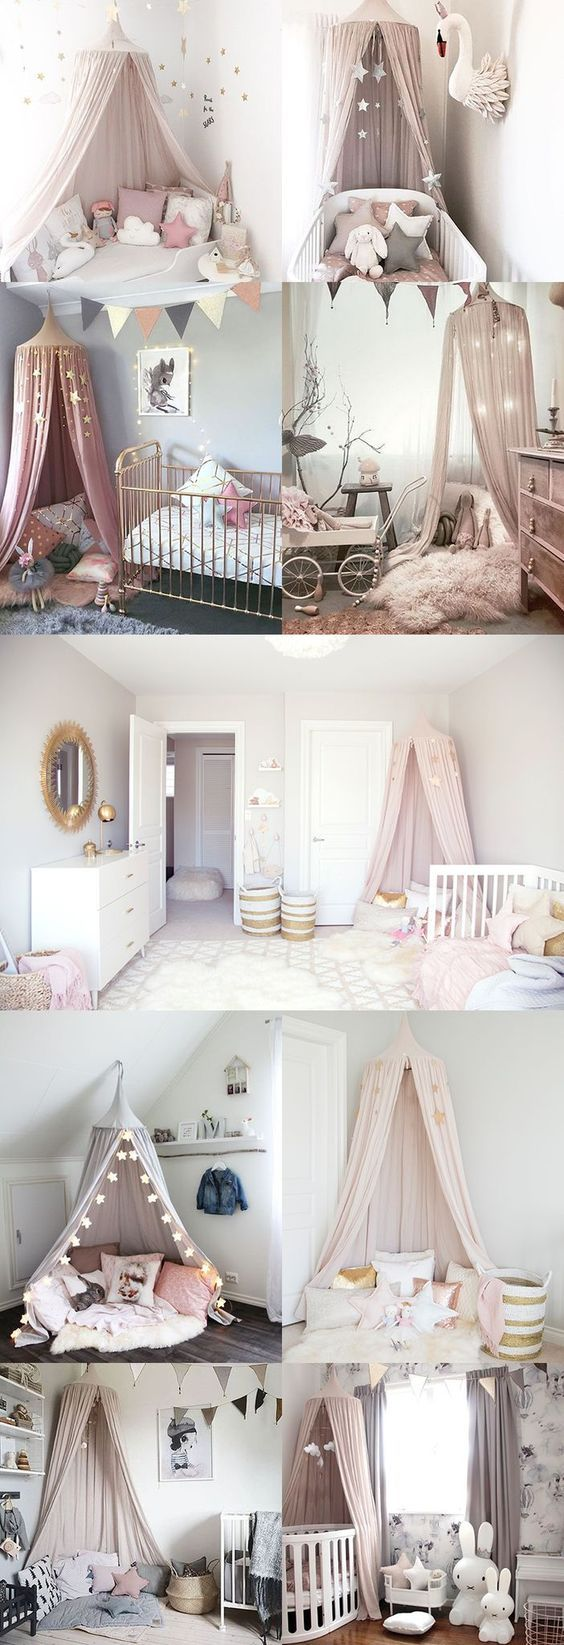 Kids And Baby Room Decor Ideas Magical Pink Canopy Tent Light